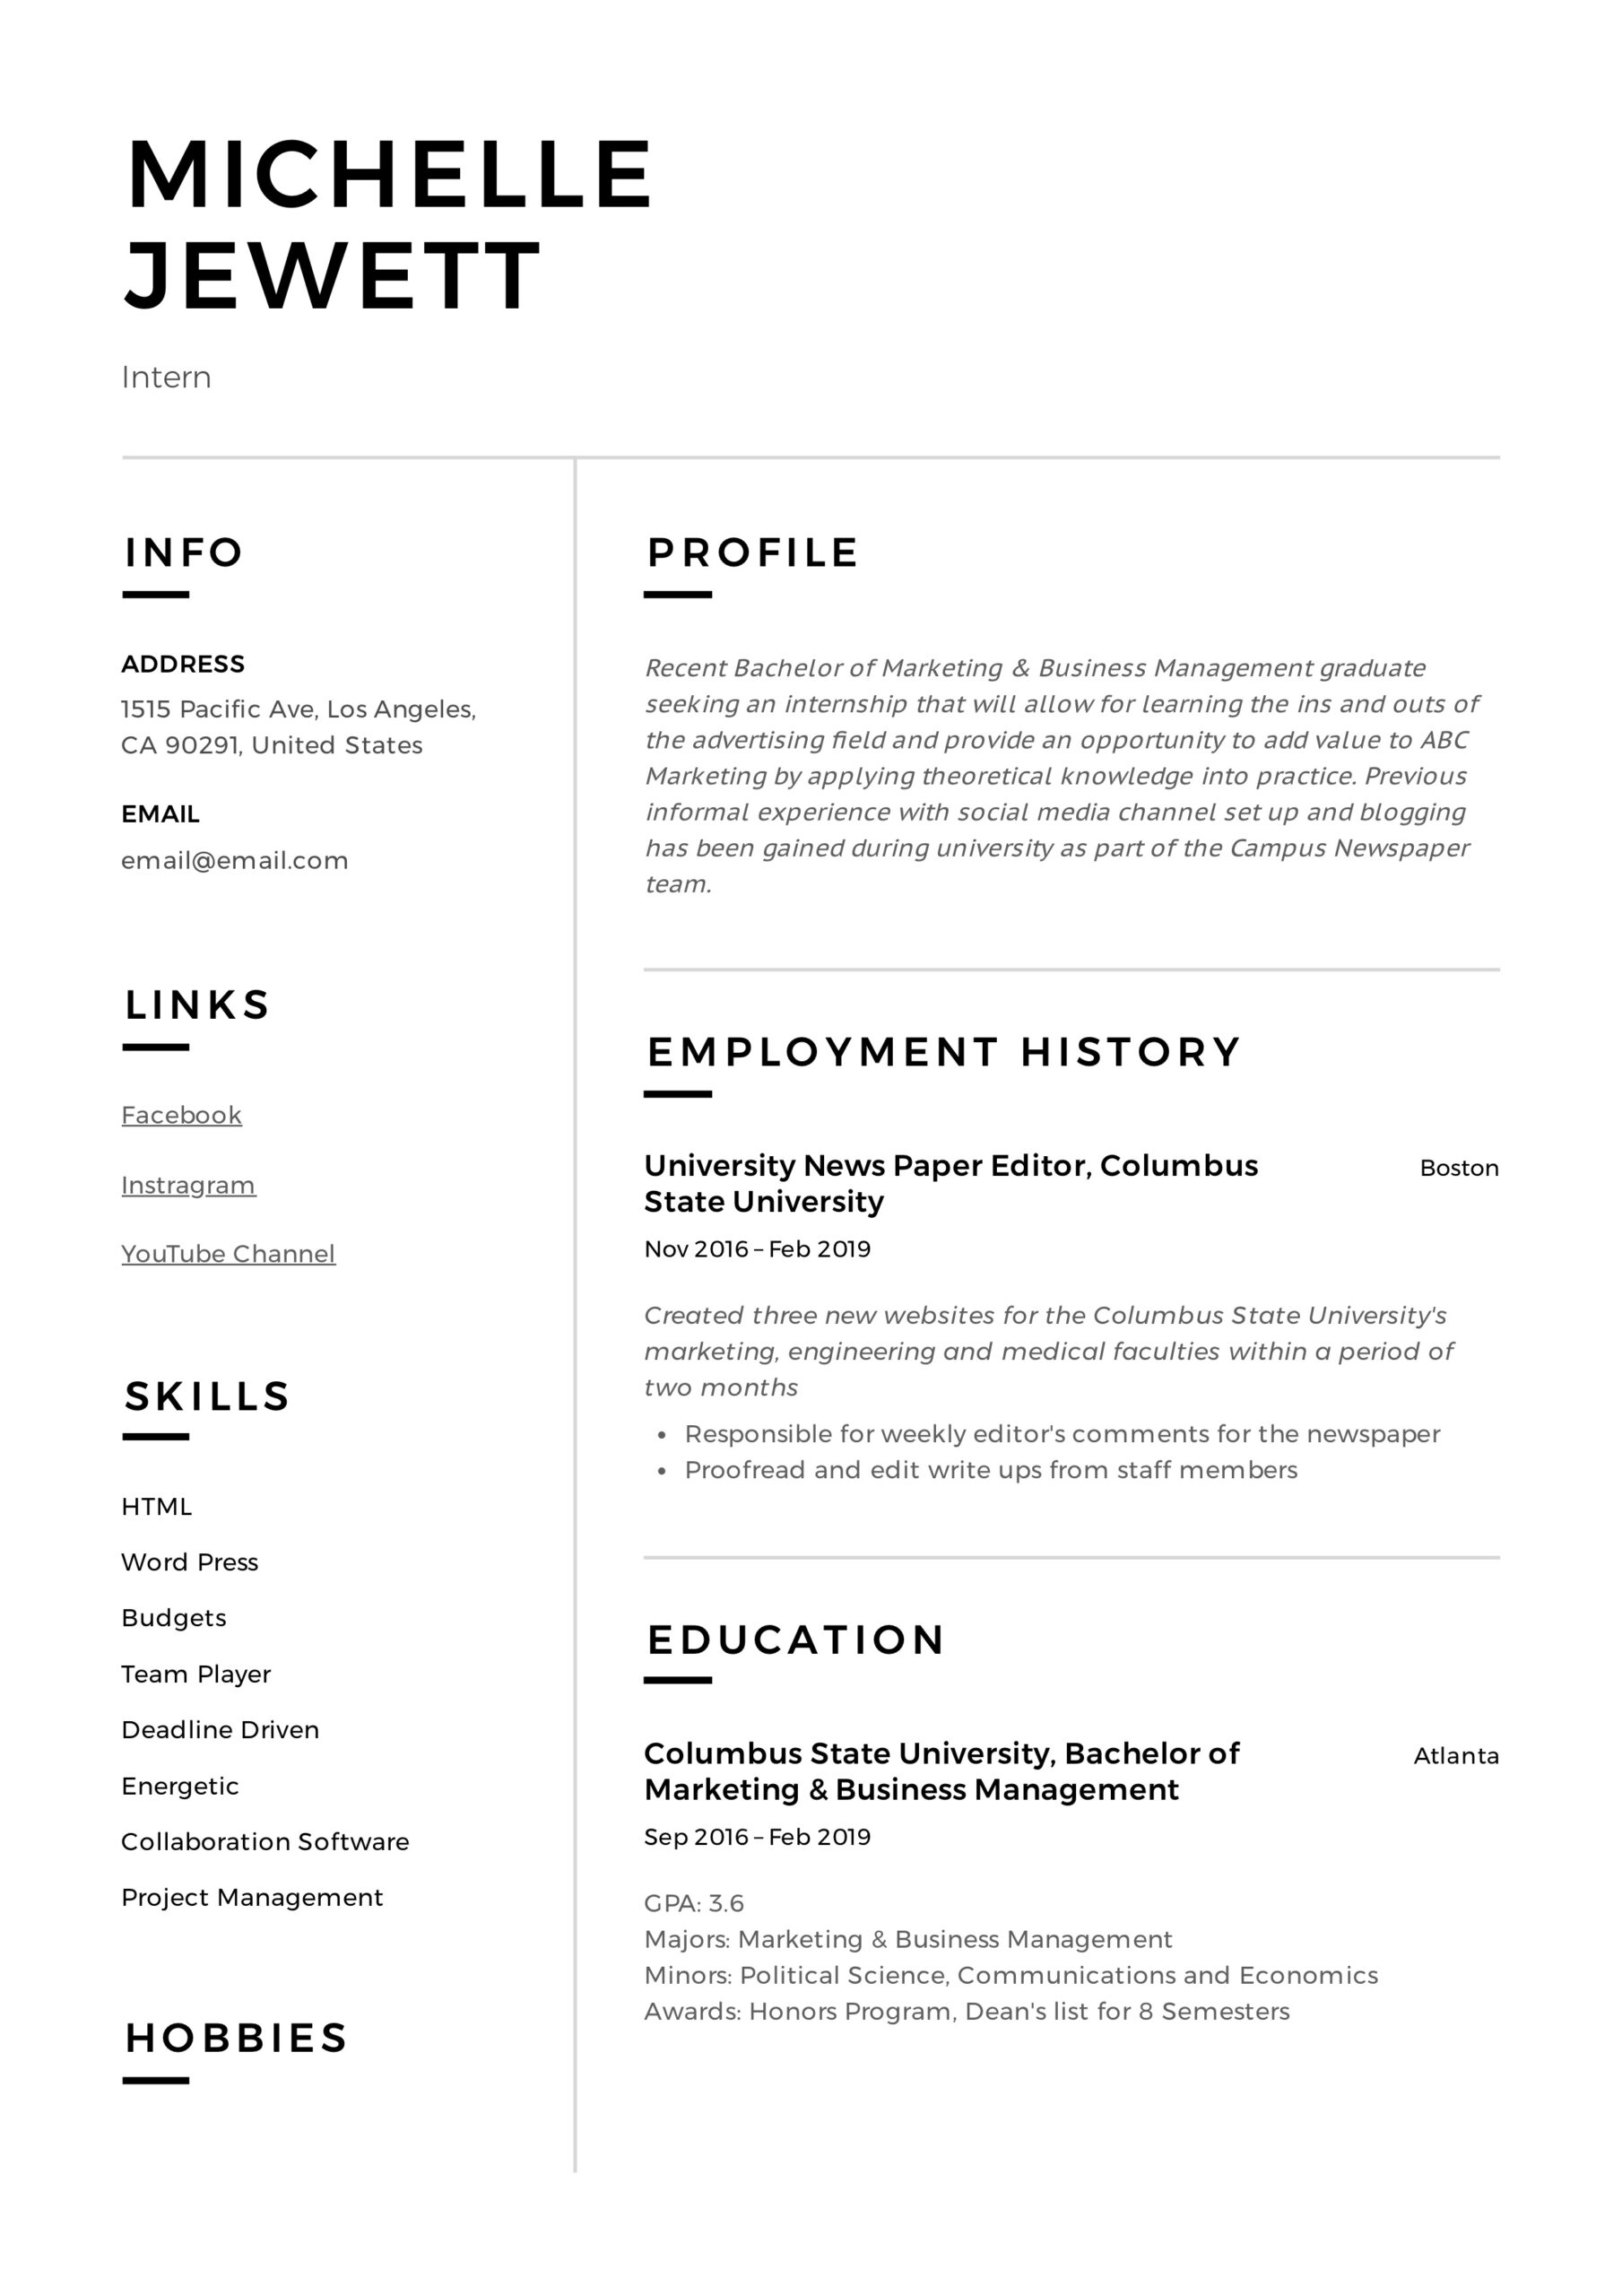 intern resume writing guide samples pdf law internship objective example network engineer Resume Marketing Internship Resume Objective